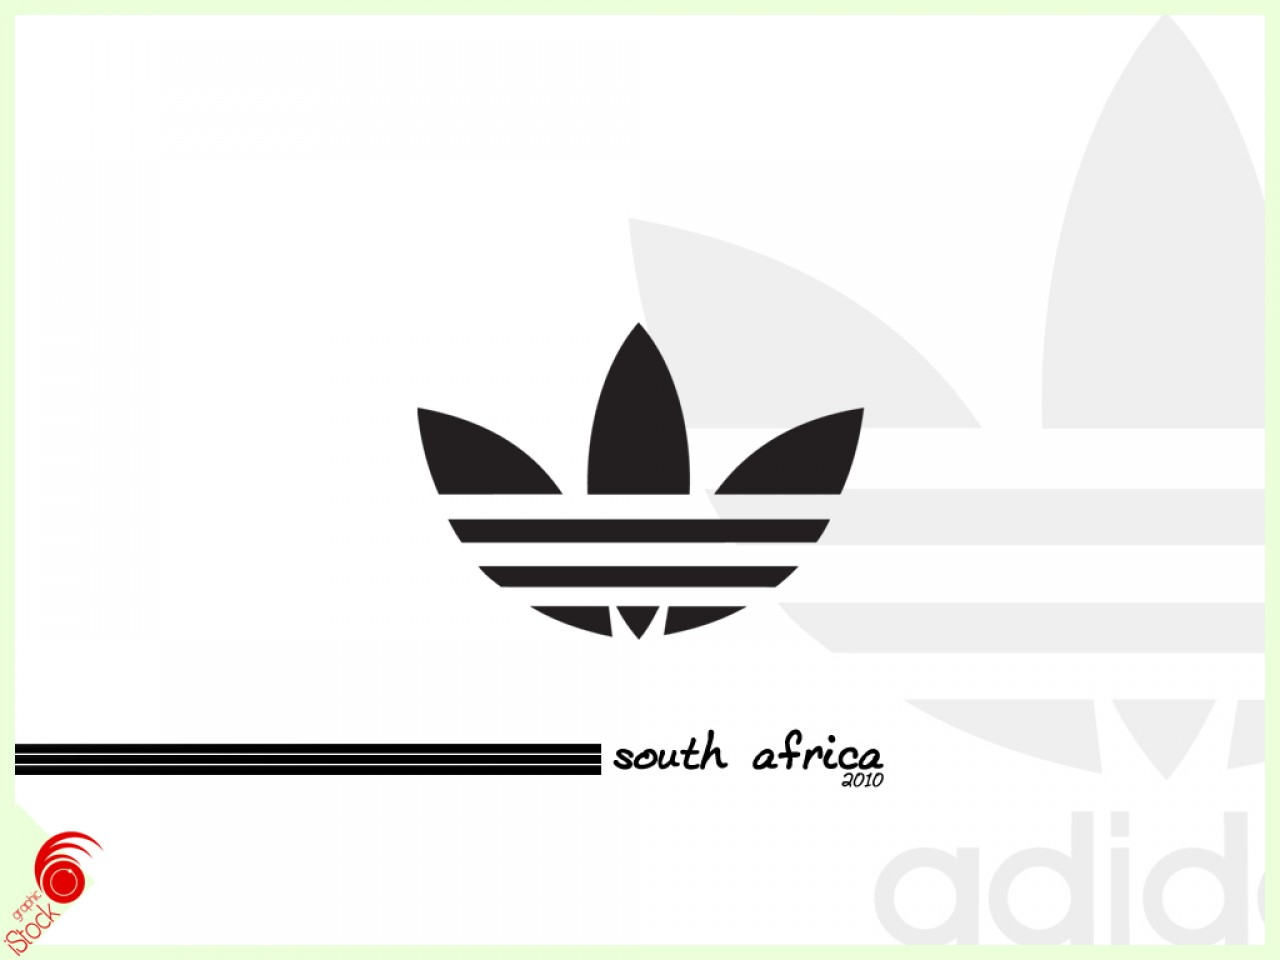 Adidas/South Afriqa wallpapers